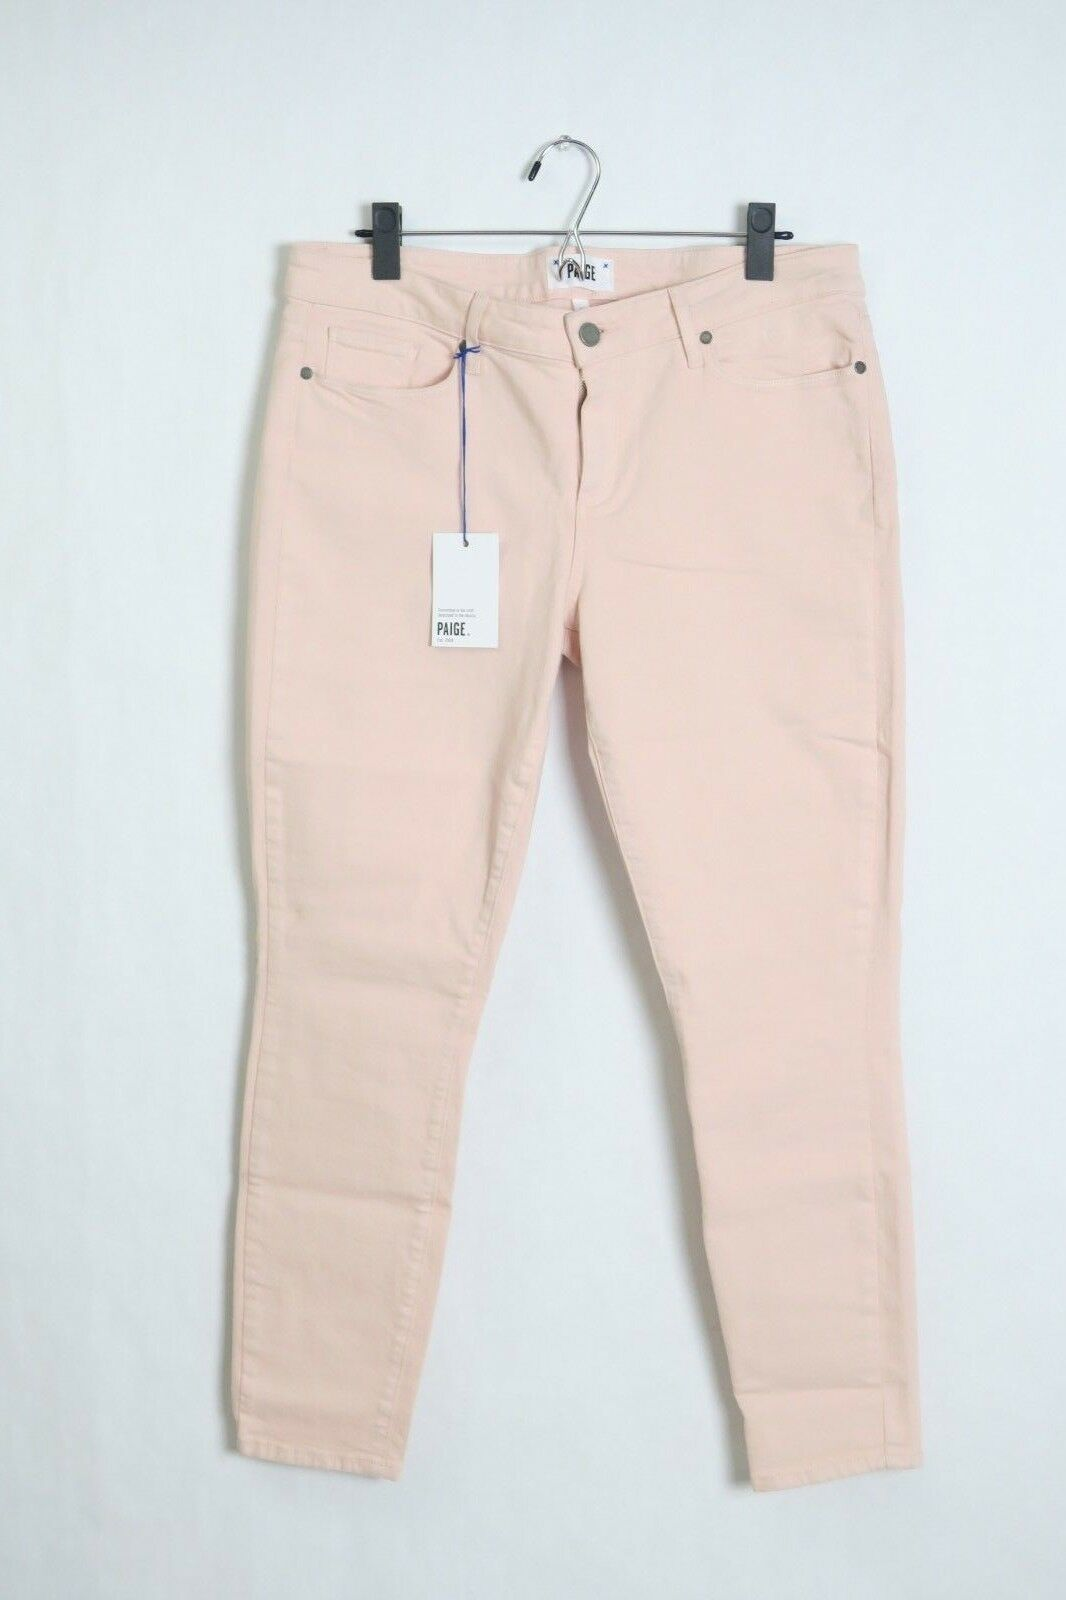 NWT Paige Women's Jean Transcend The Verdugo Ankle Powder Pink Light Skinny 32